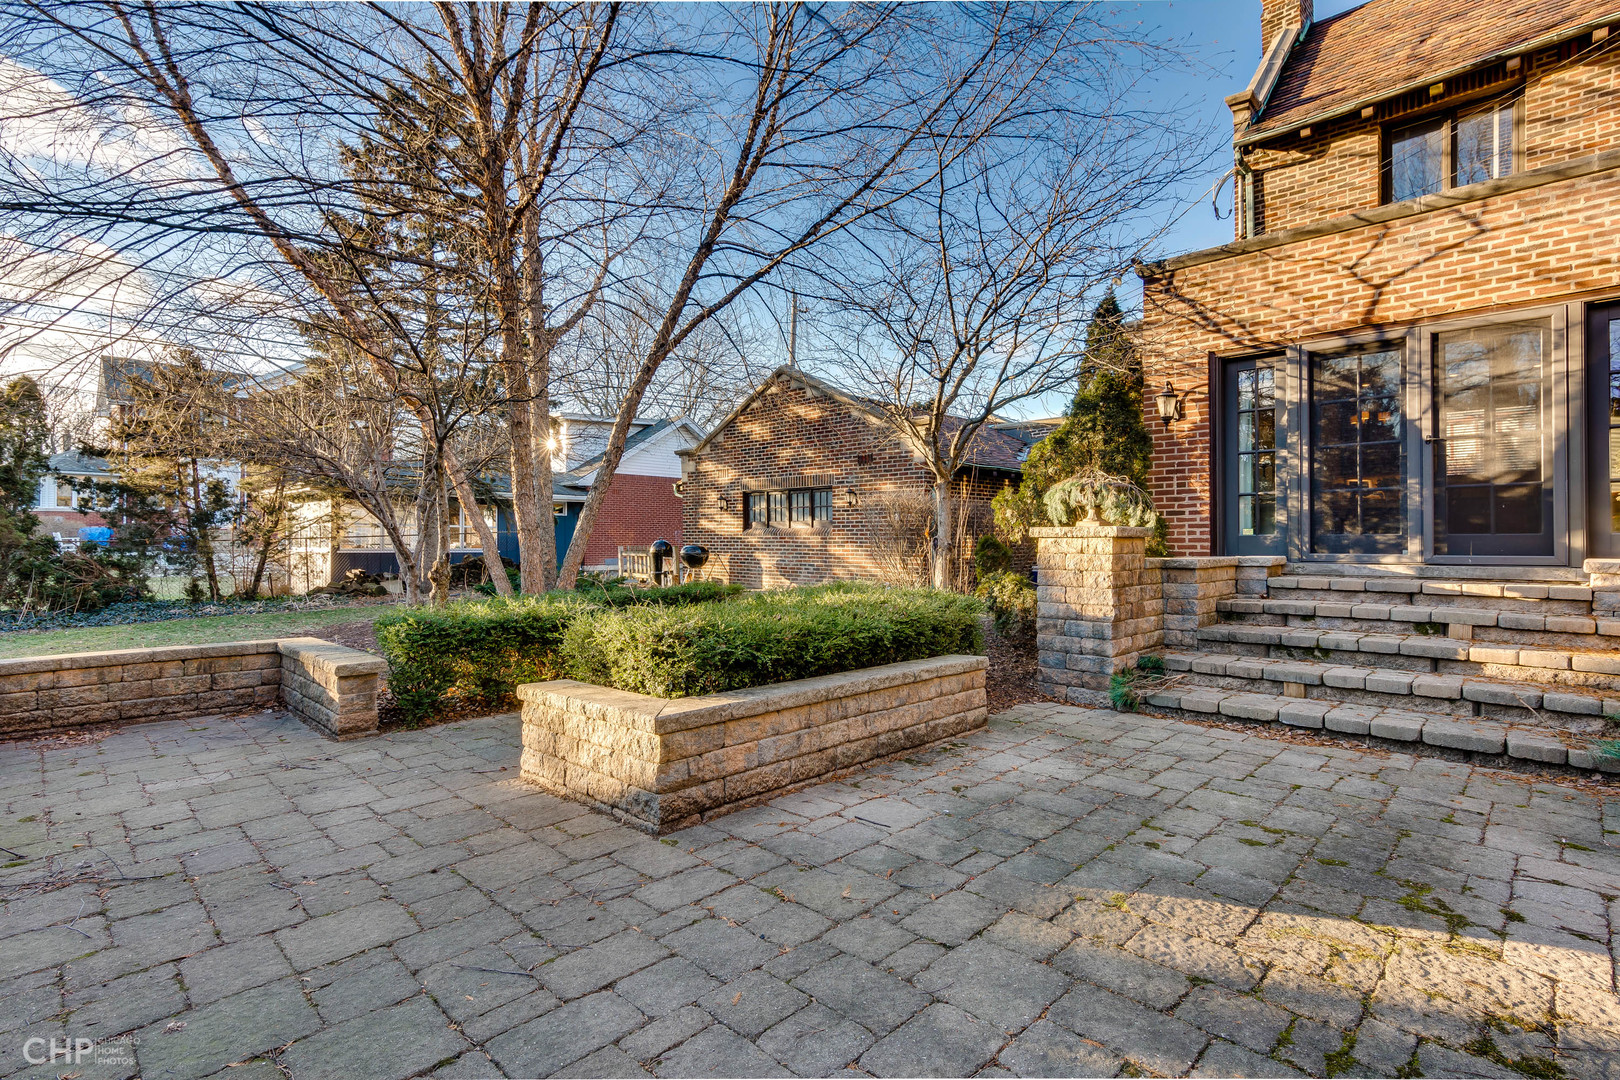 10502 South SEELEY, CHICAGO, Illinois, 60643